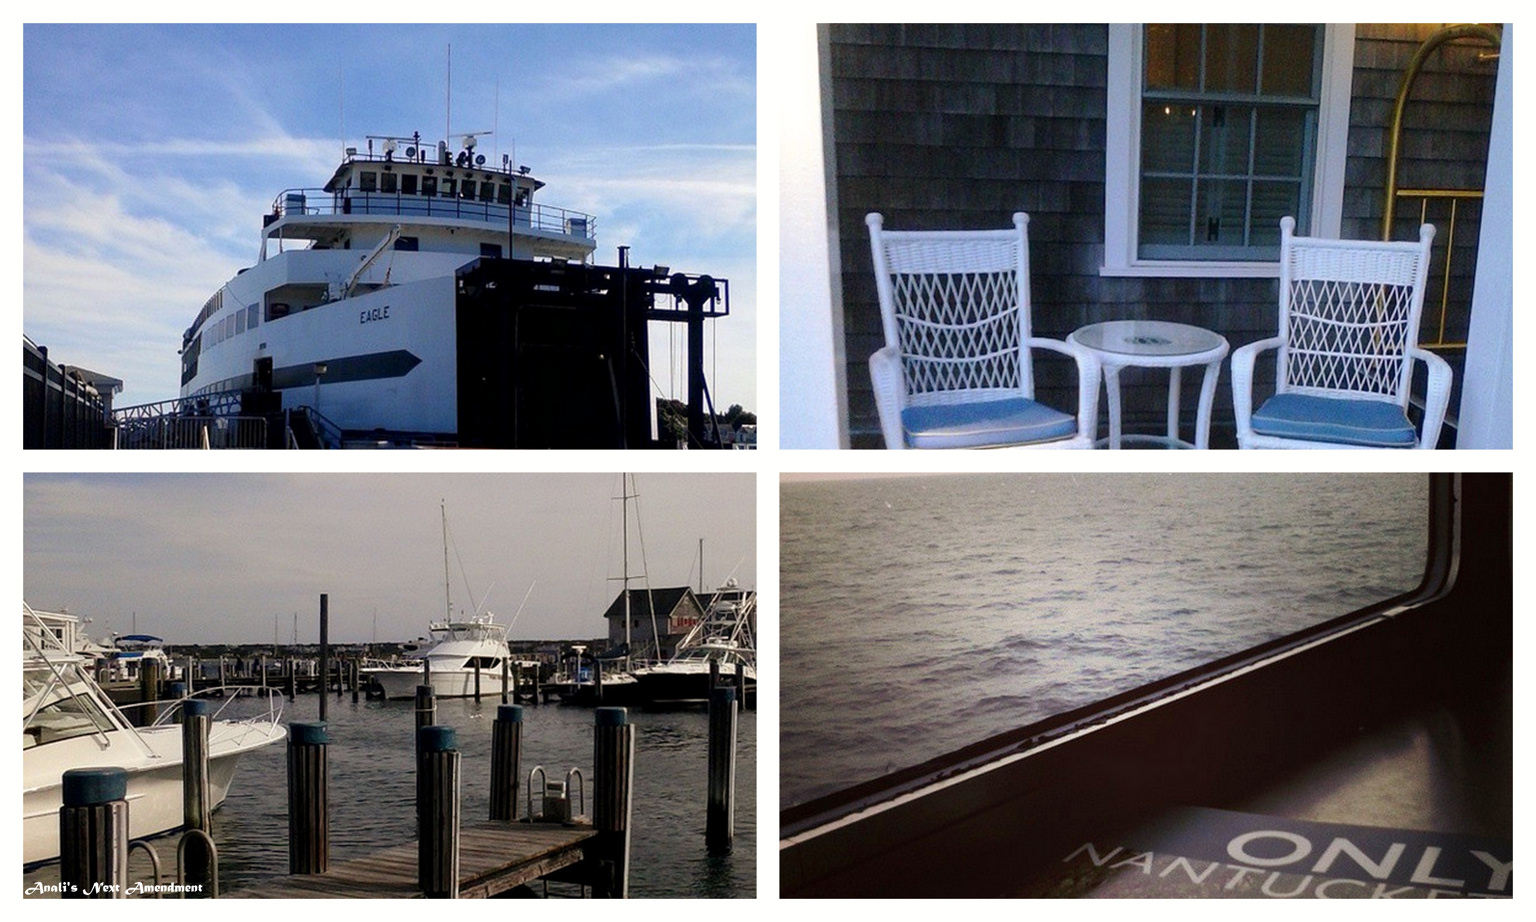 Scenes from Nantucket